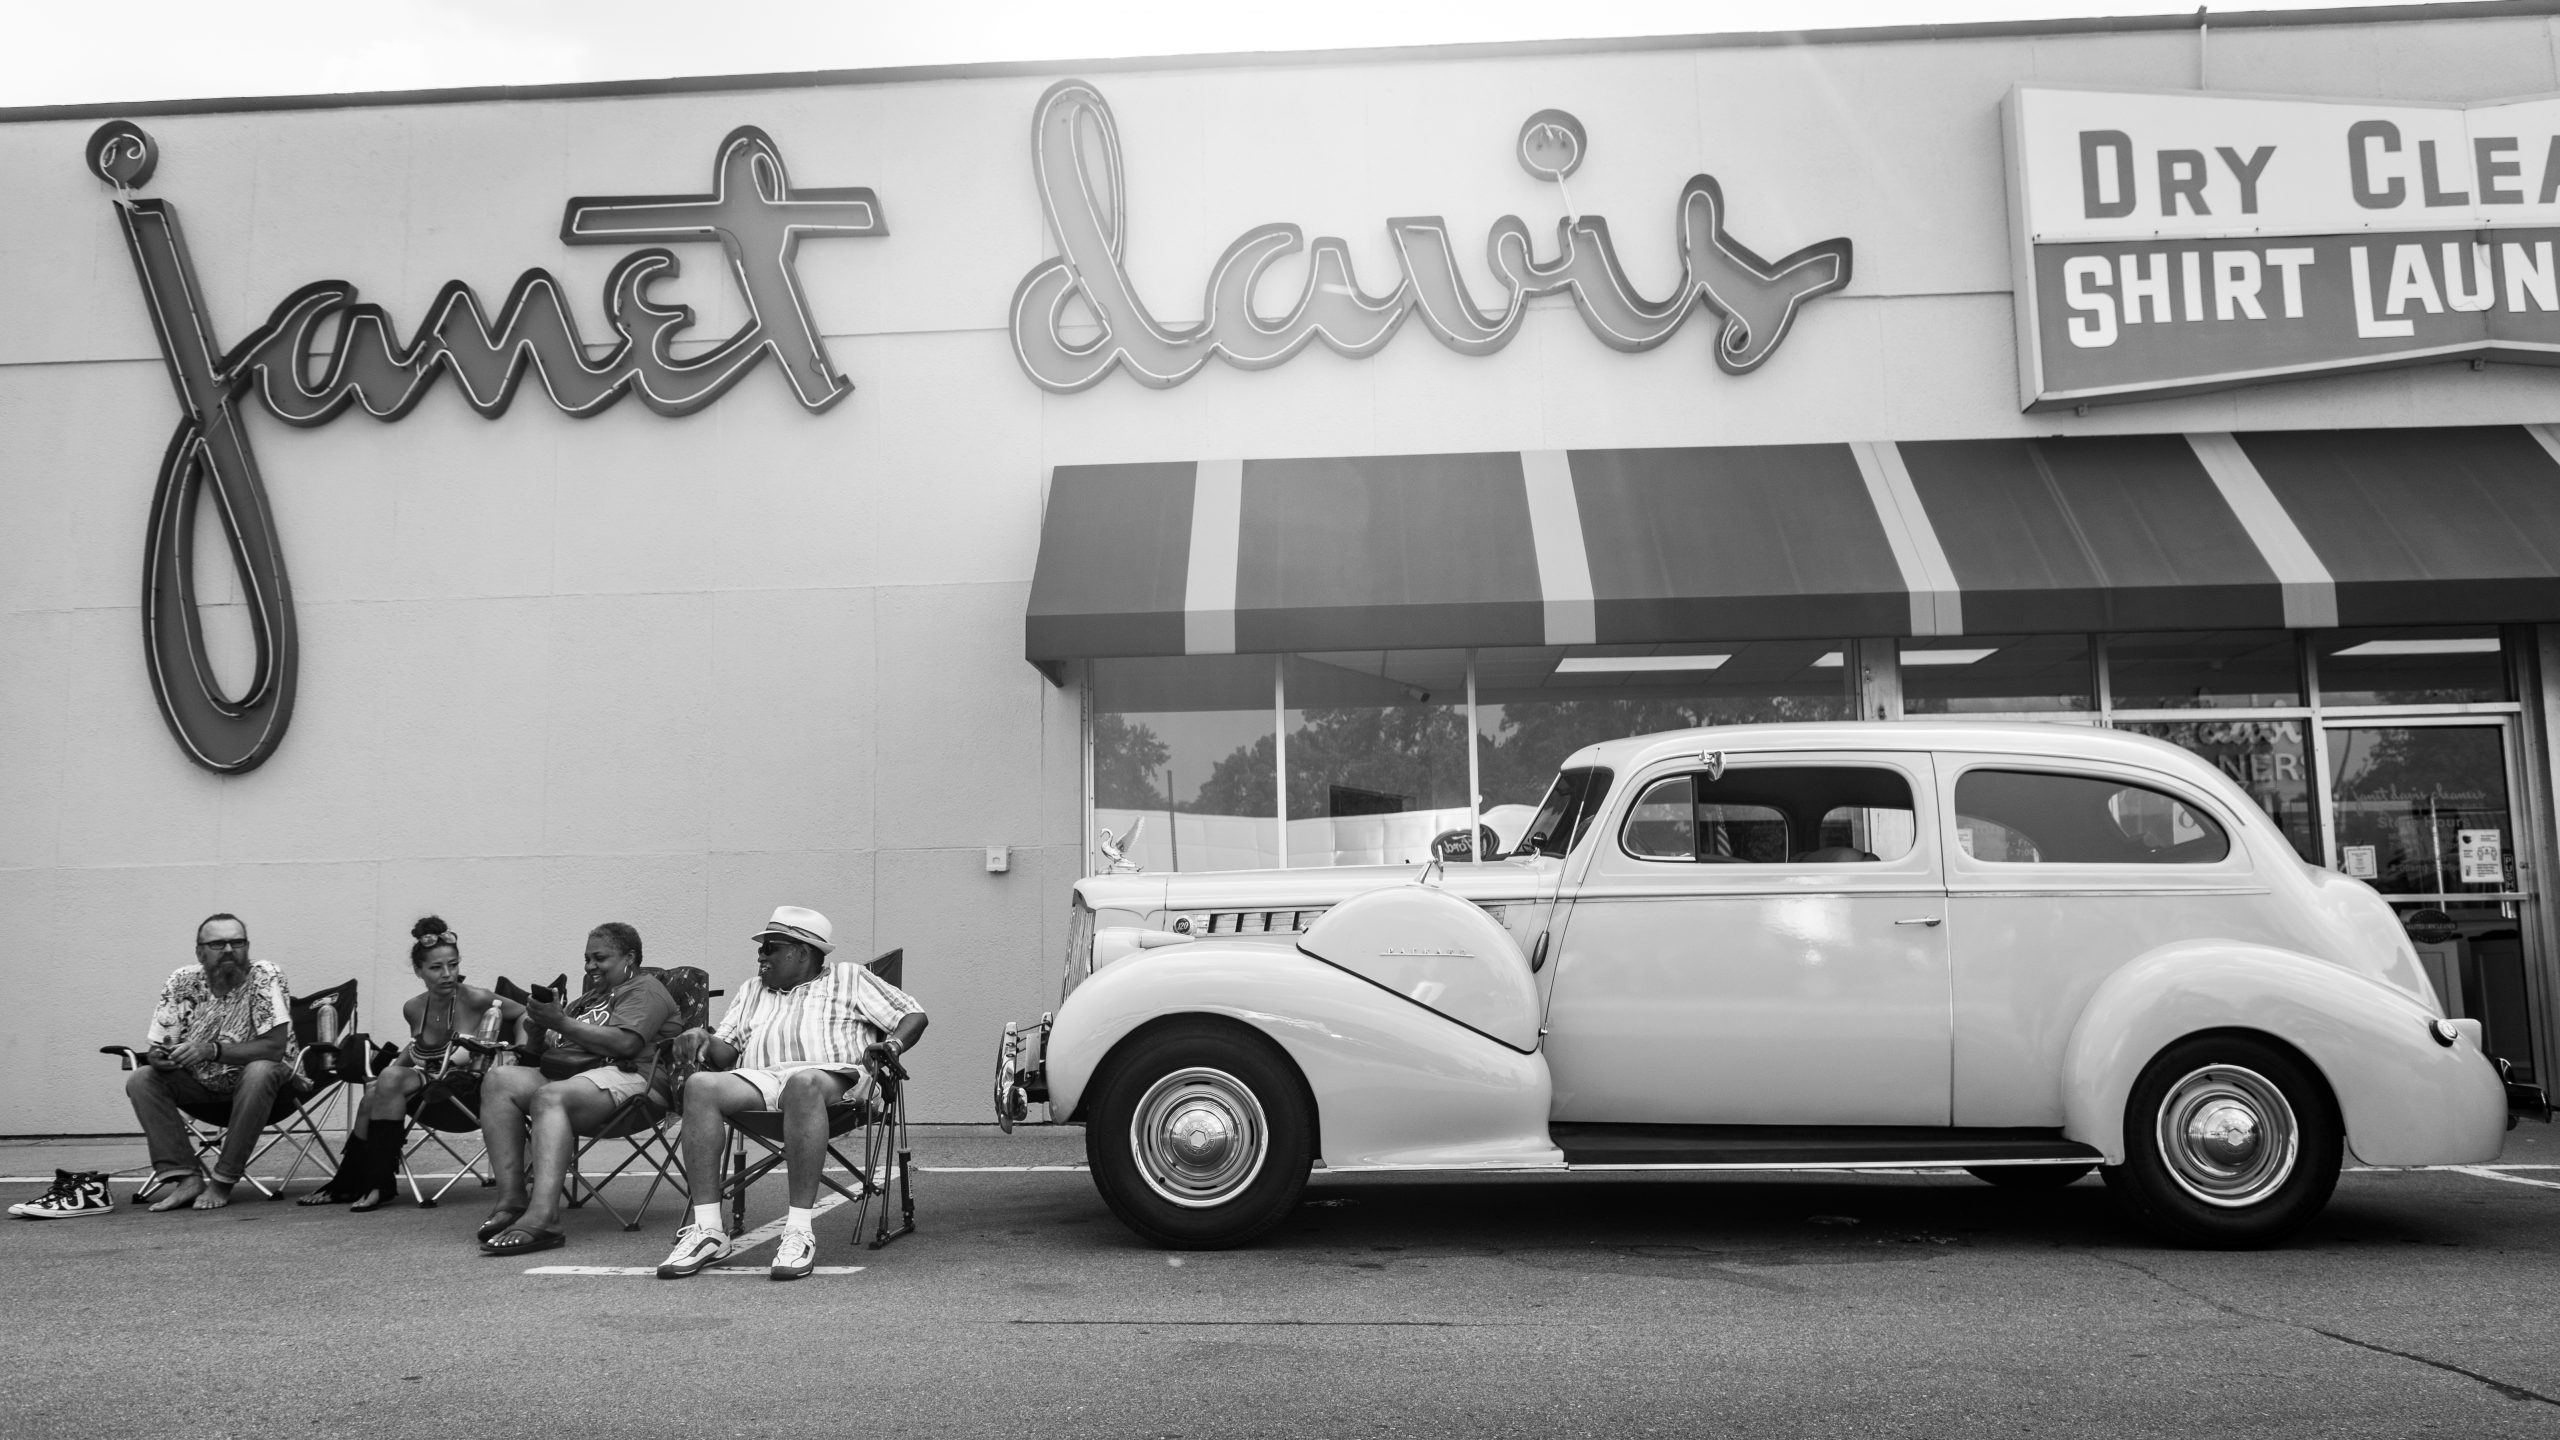 2021 Dream Cruise woodward ave action classic at janet davis dry cleaners